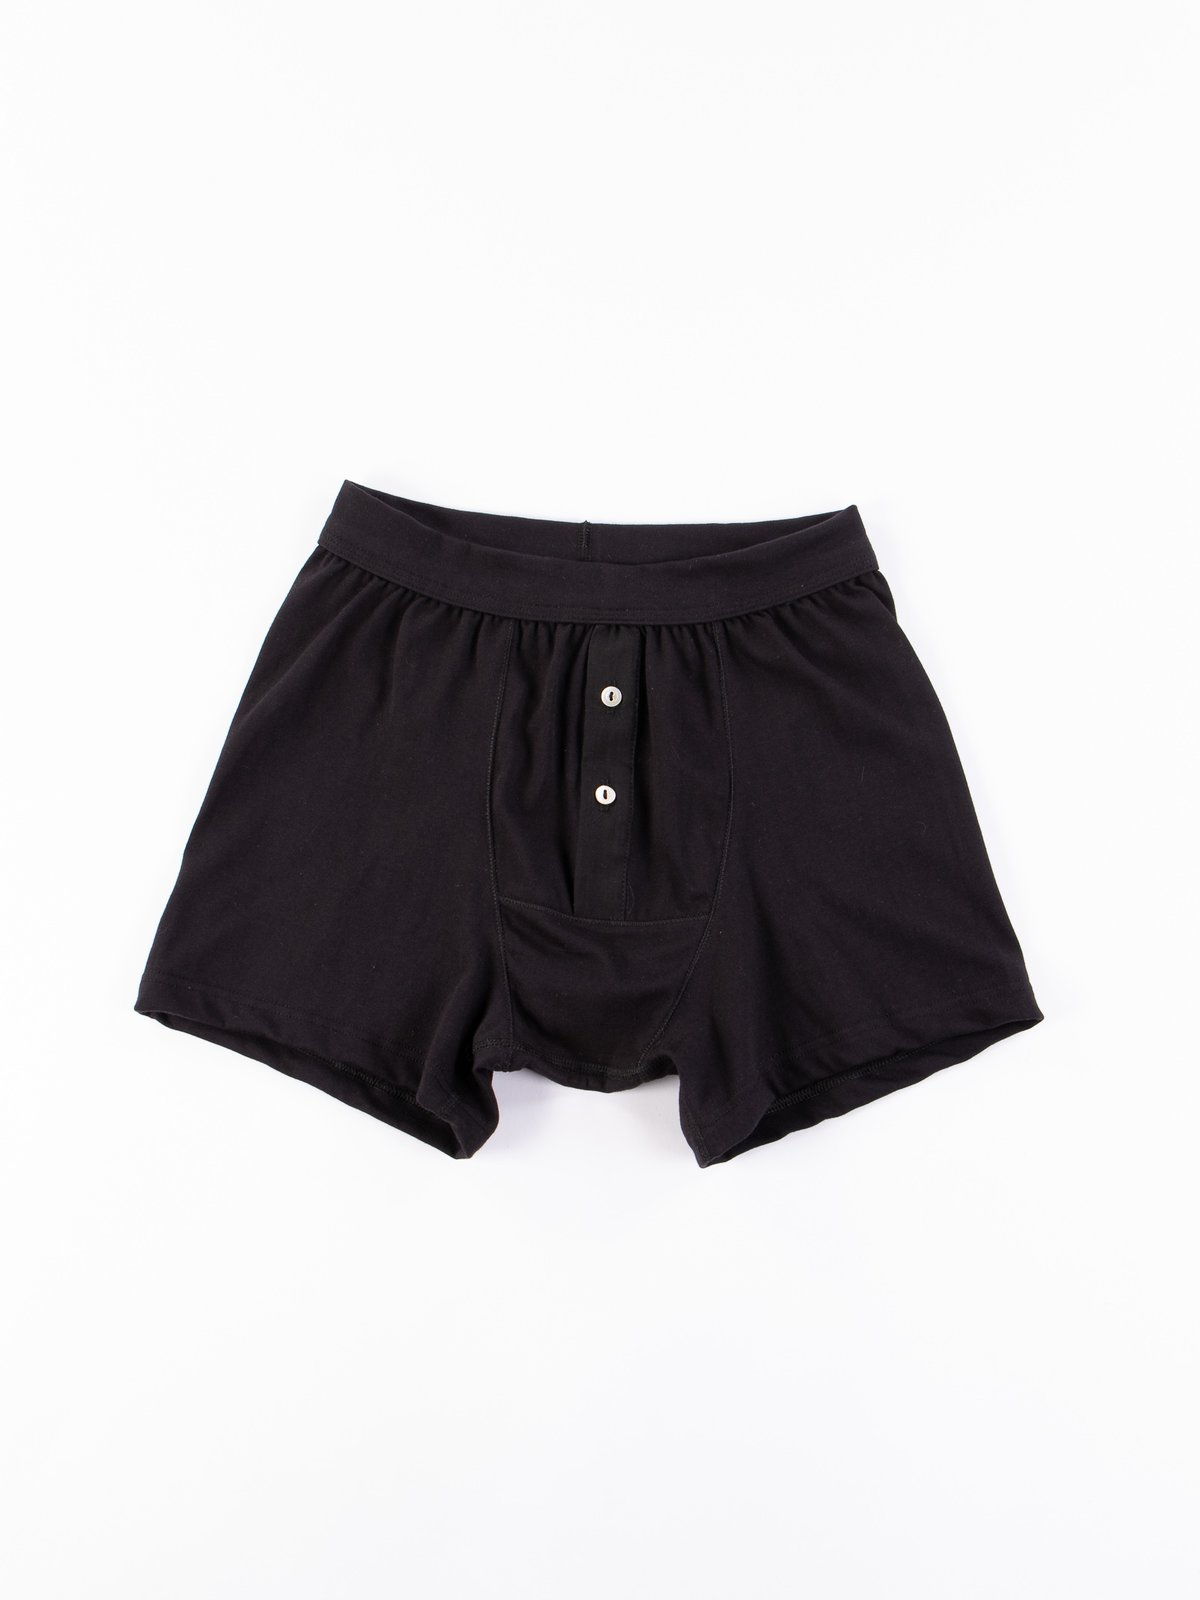 Black 255 Button Fly Boxer - Image 1